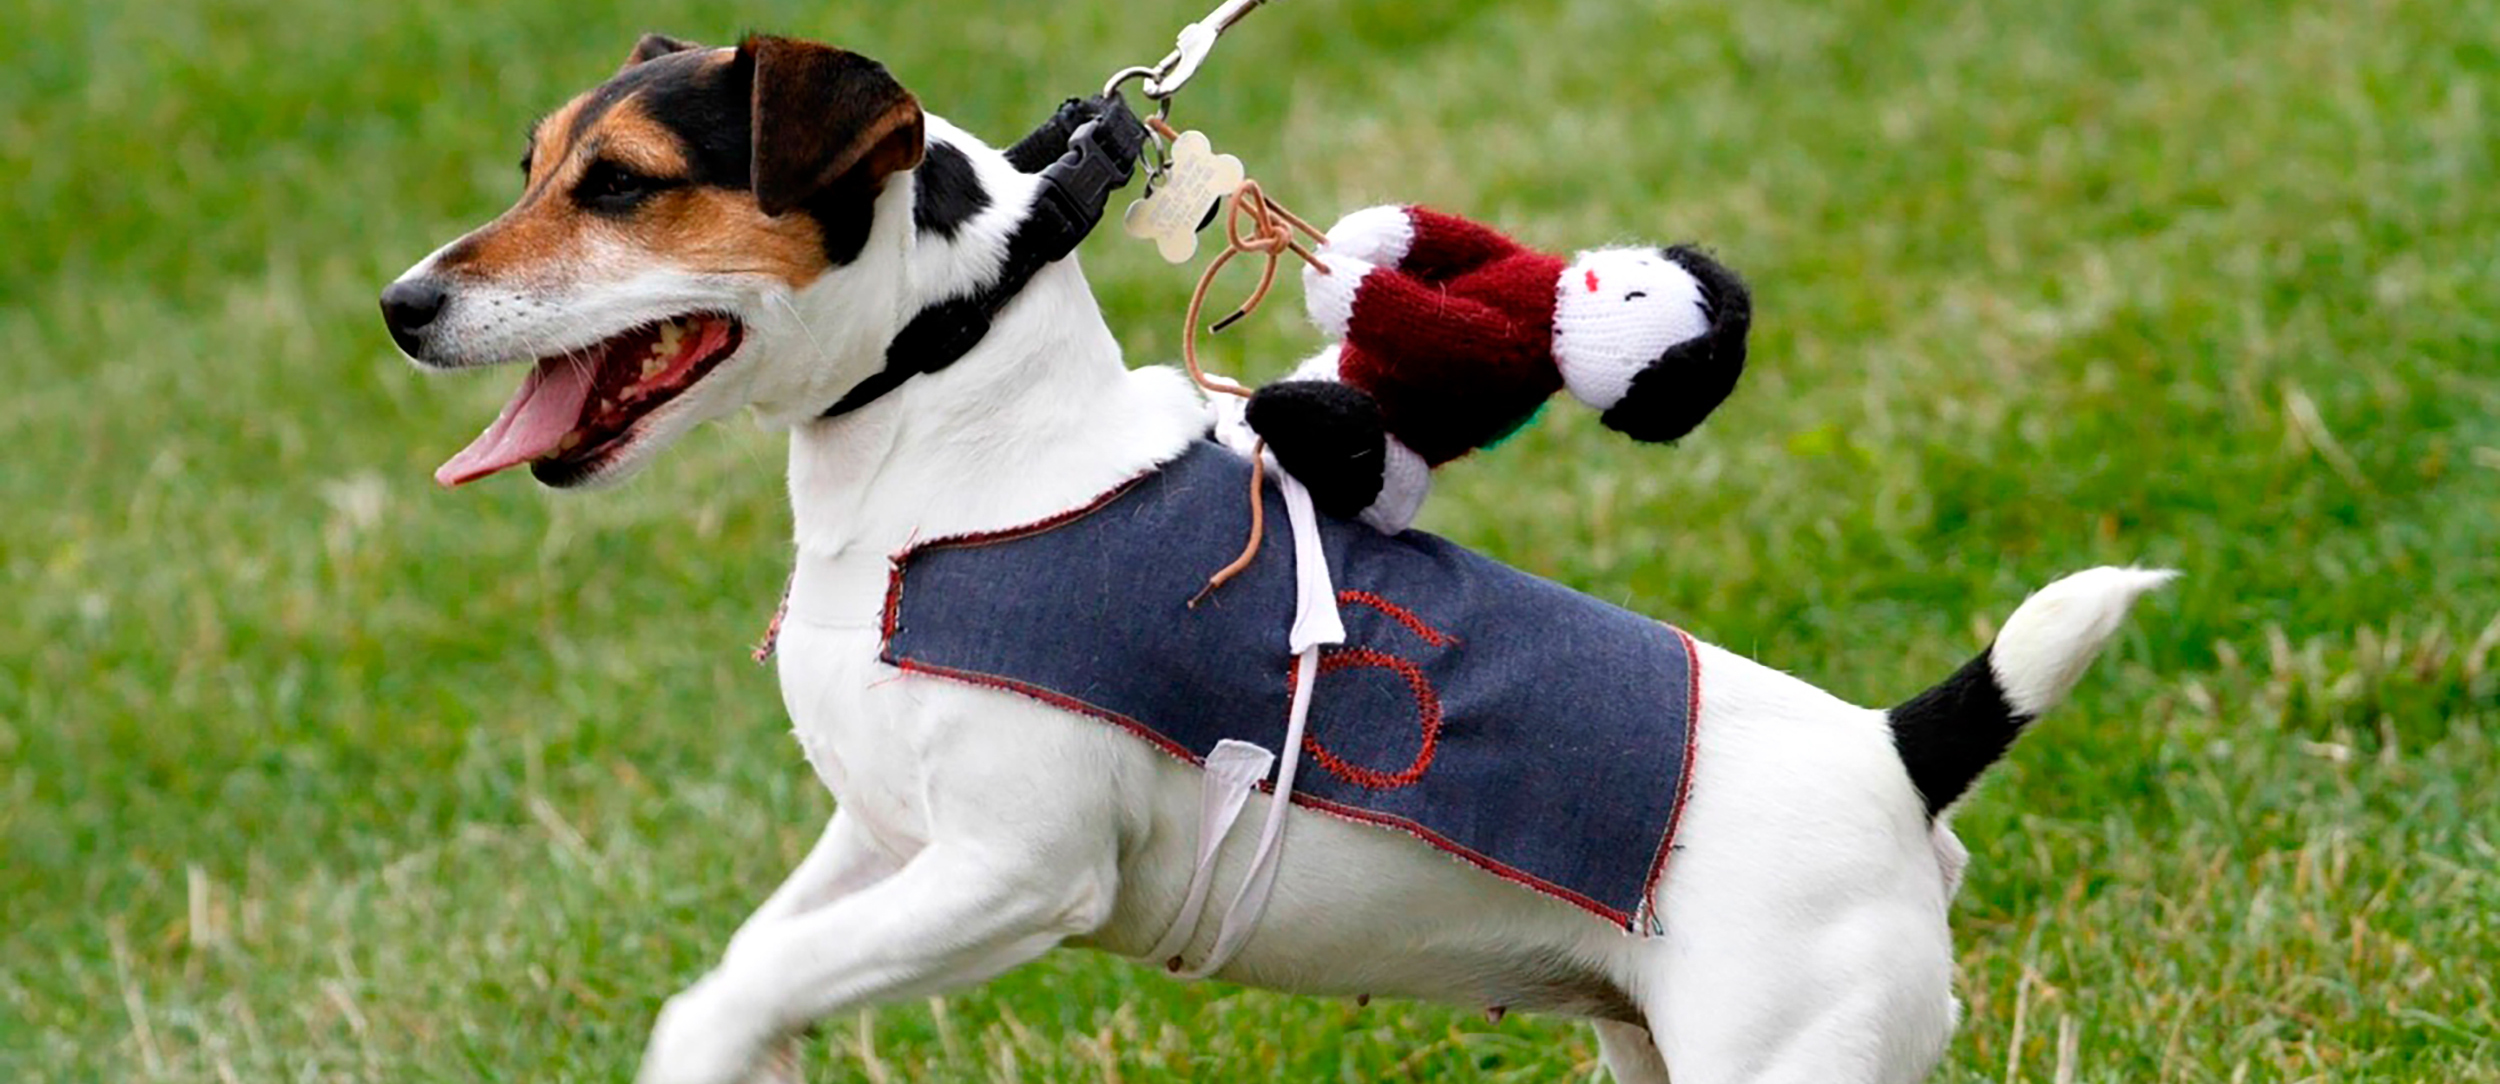 Jack Russell terrier with knitted jockey on his back